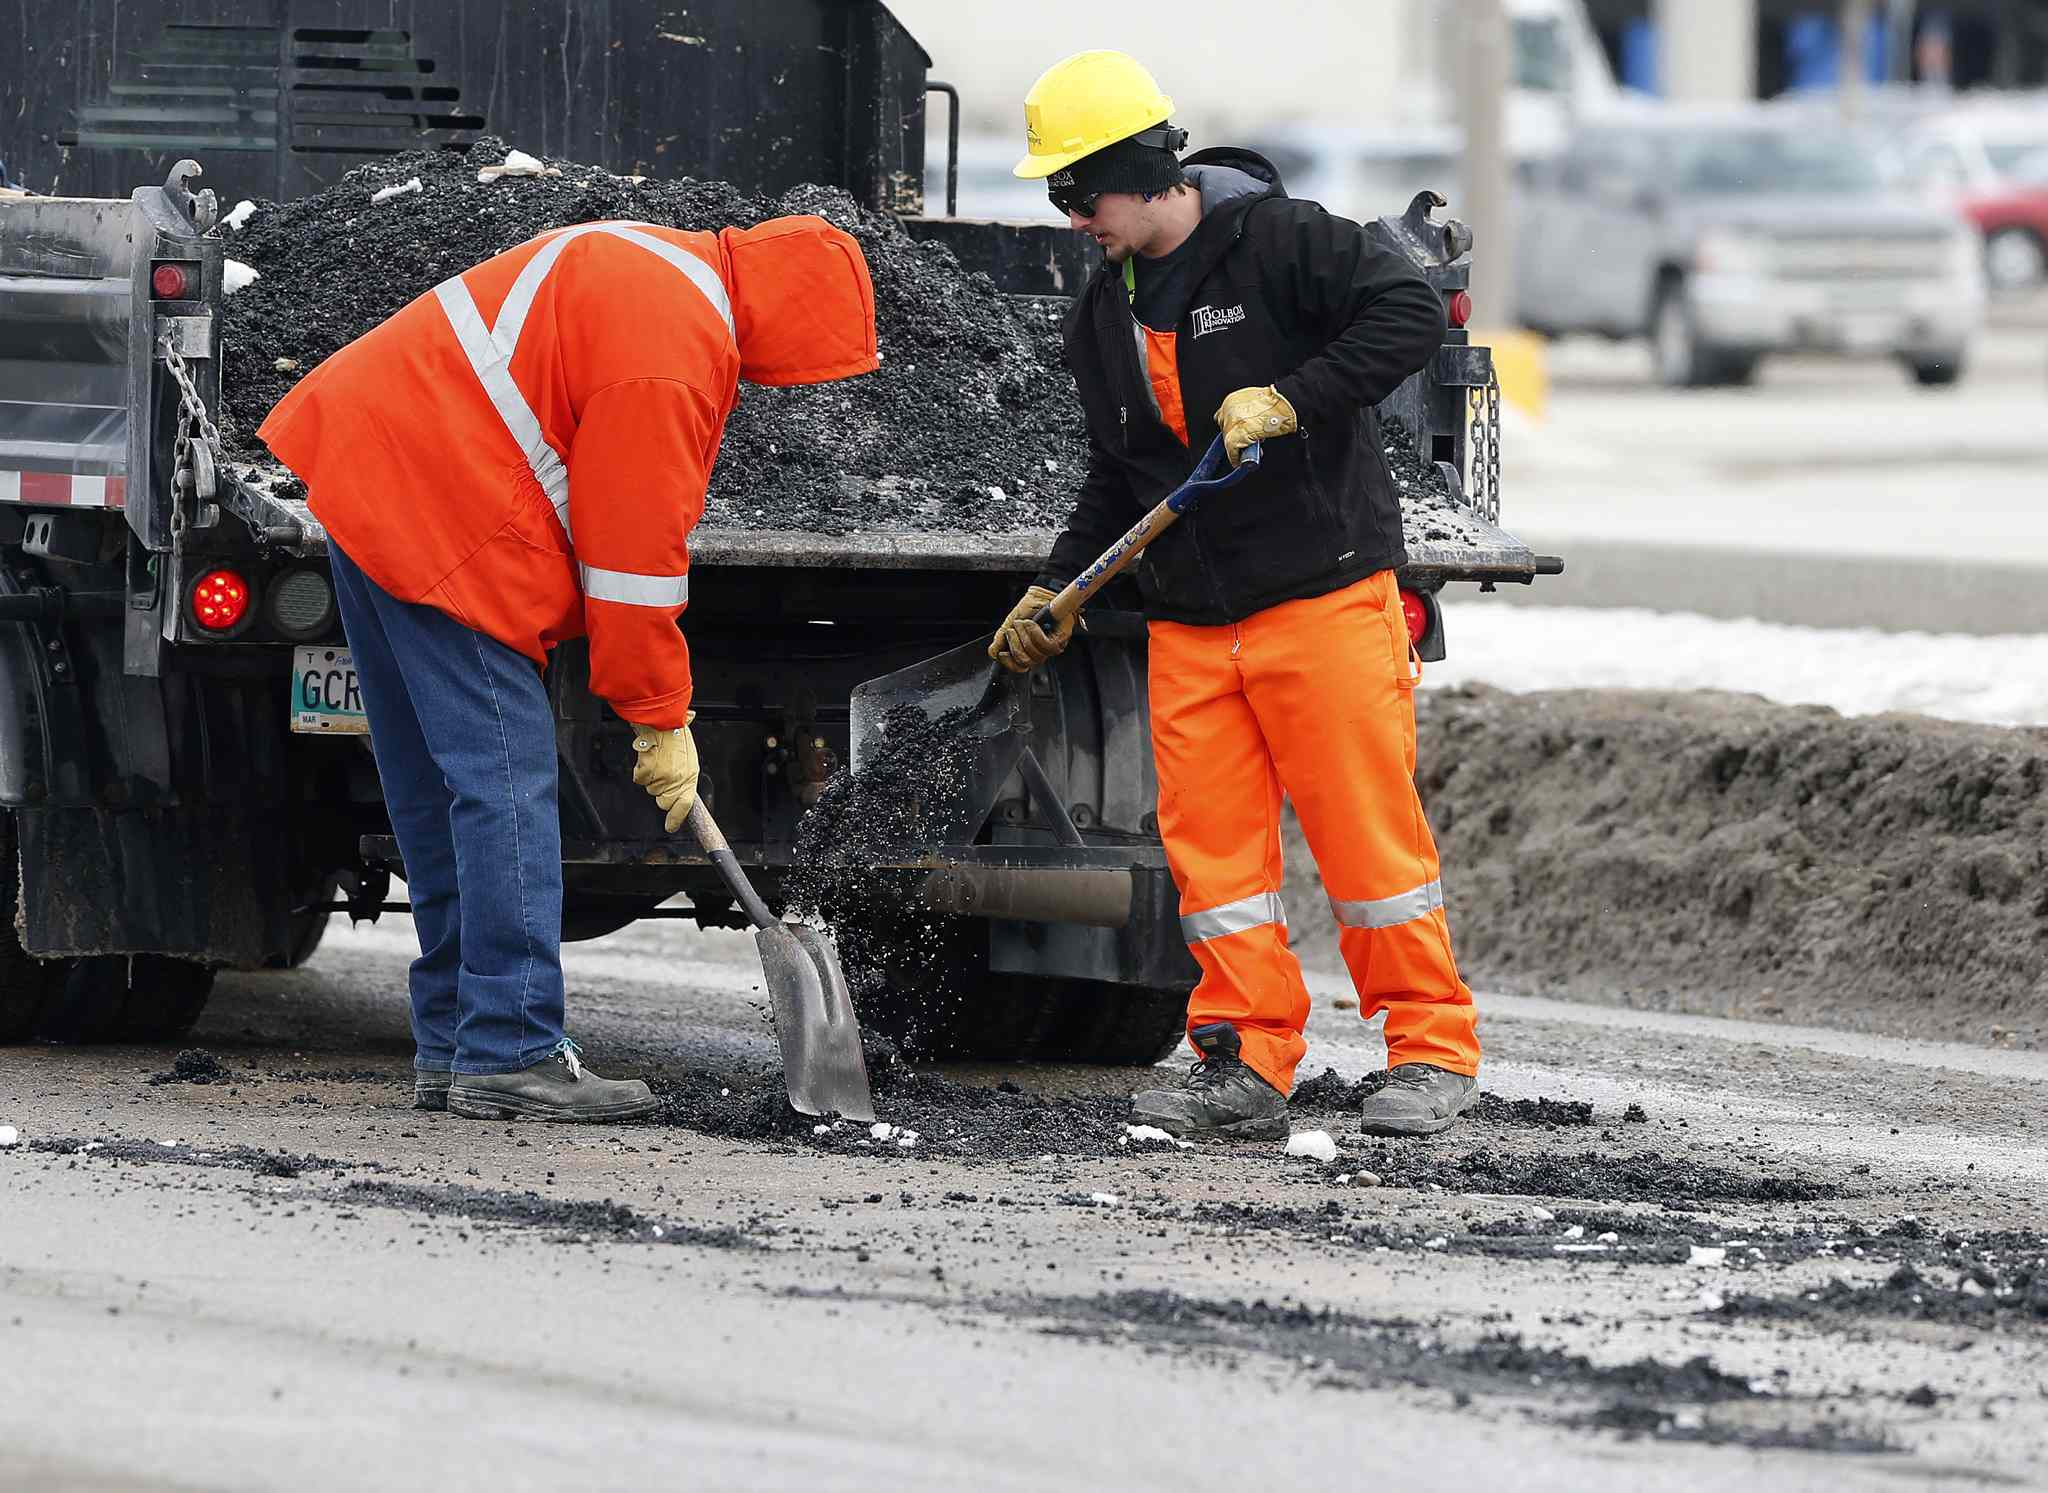 The Manitoba Heavy Construction Association wants mayoral candidates to think about infrastructure issues, such as potholes.